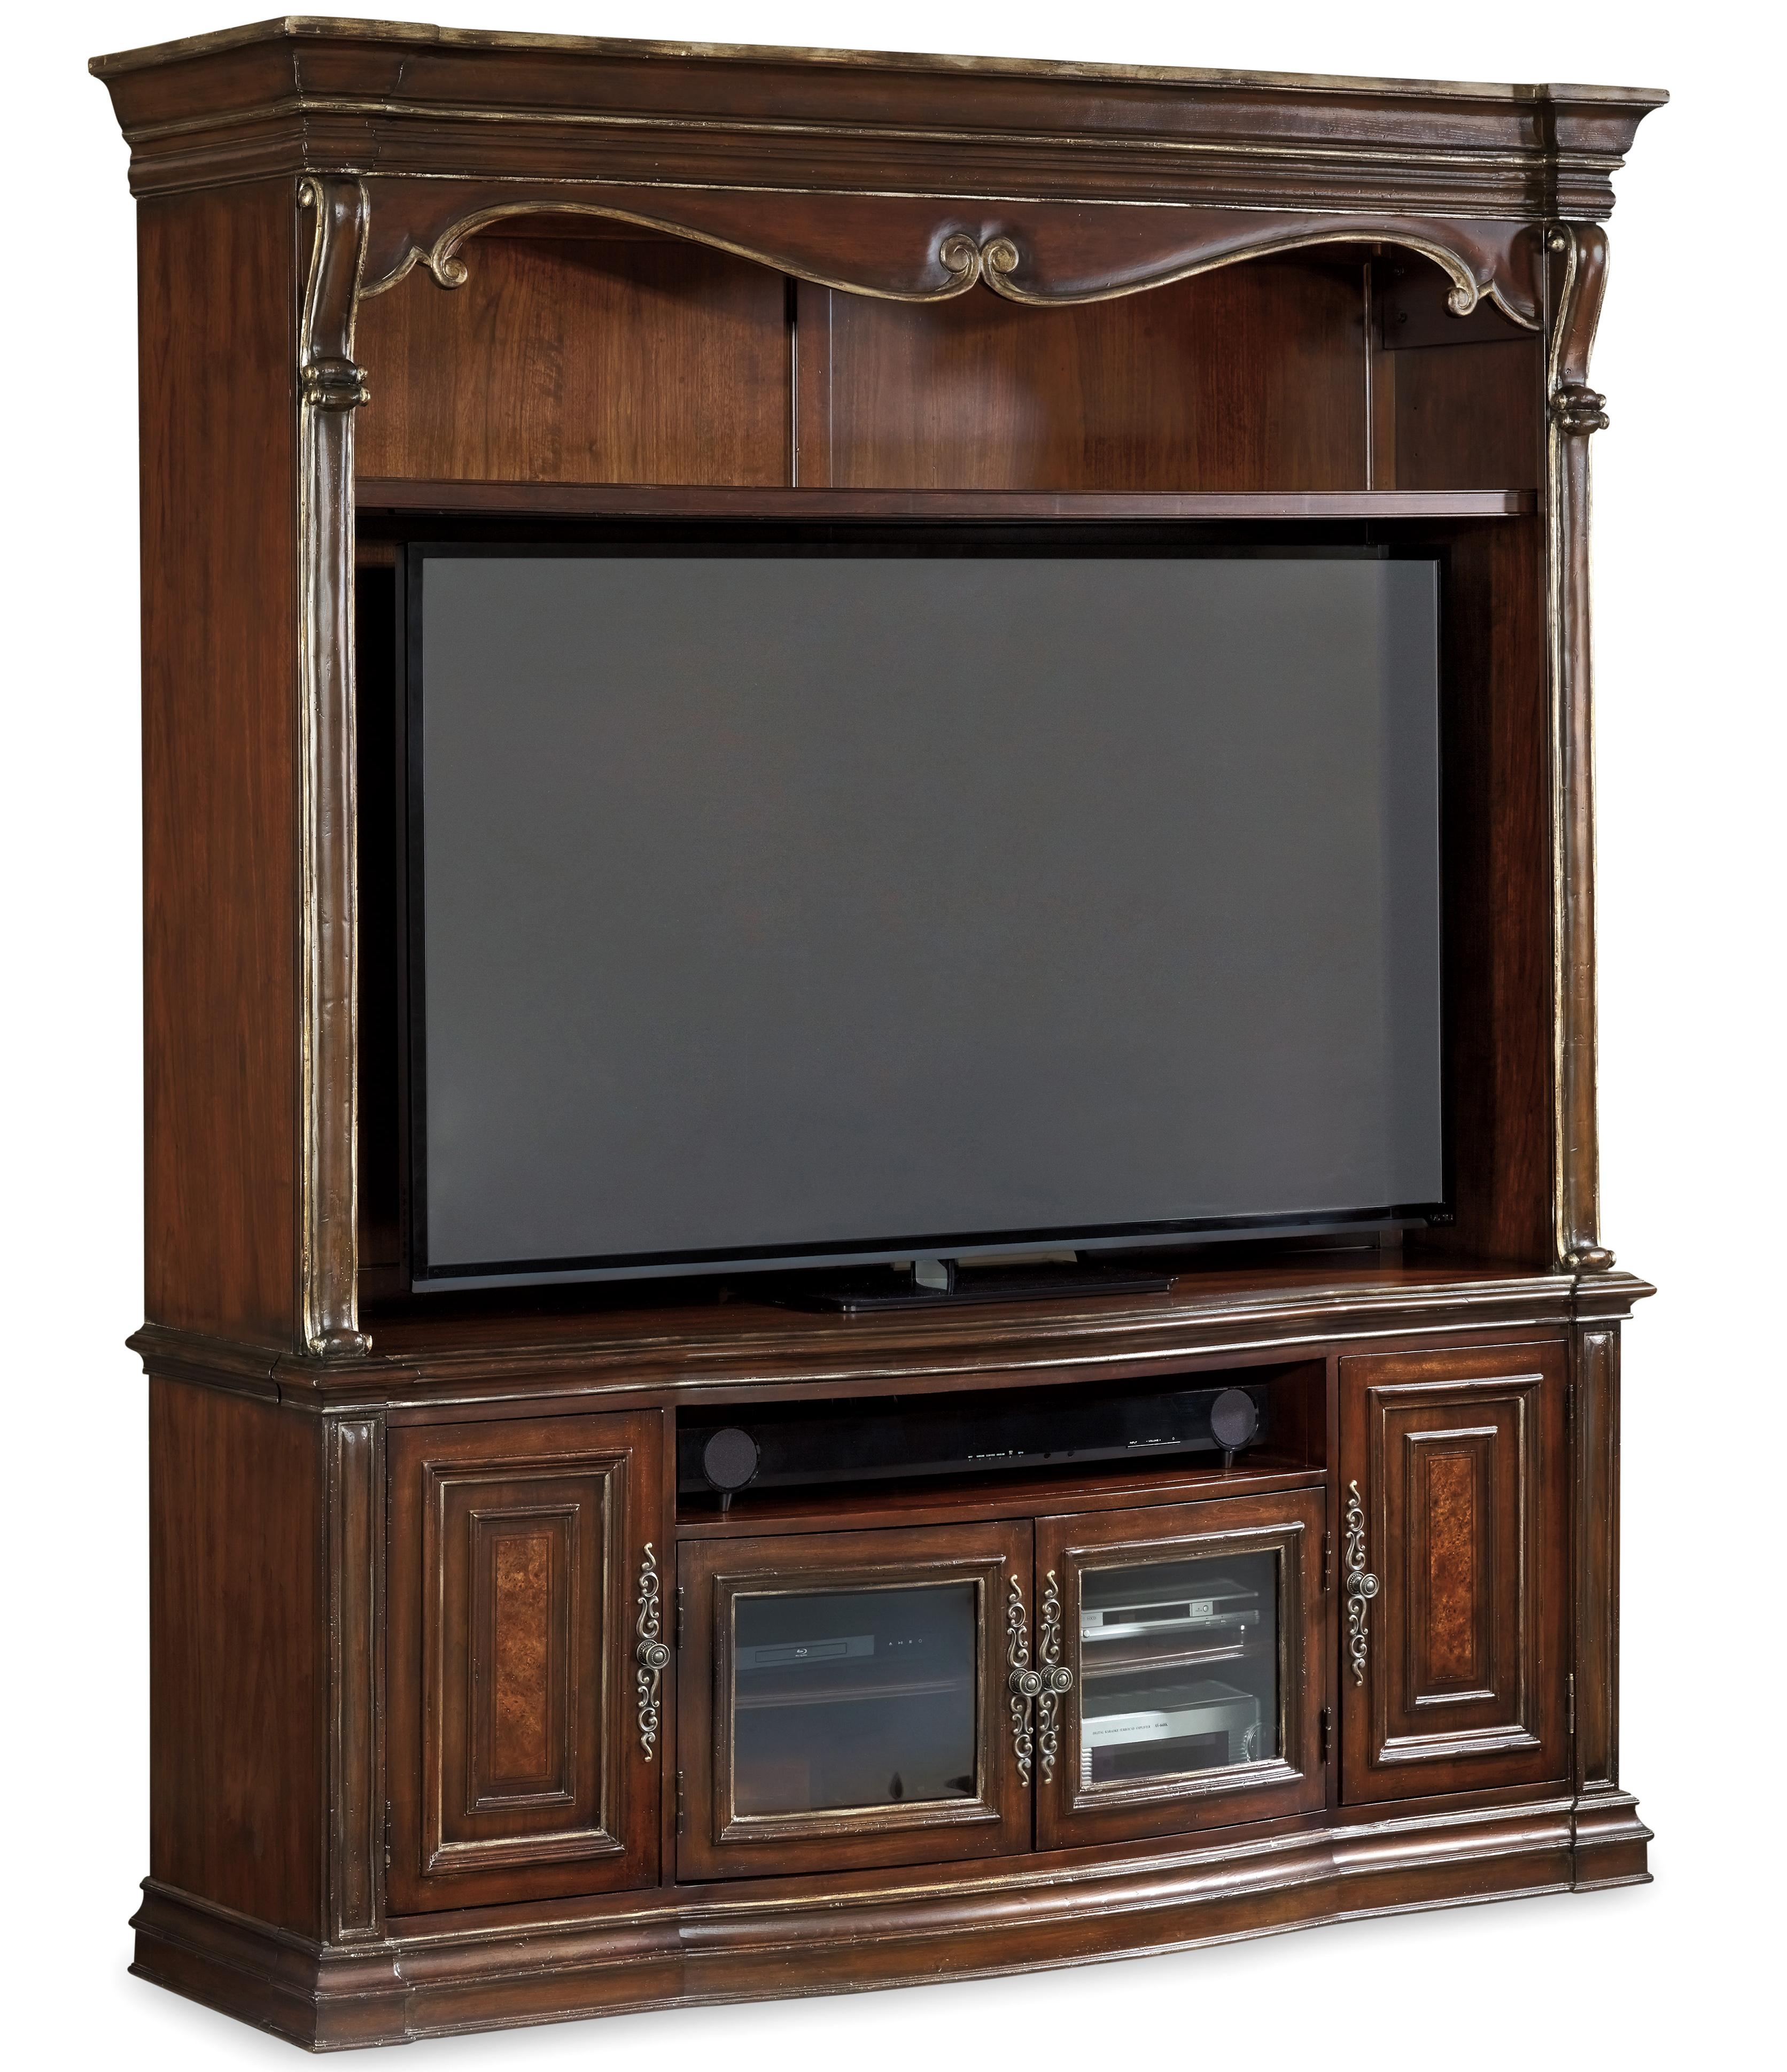 Hooker Furniture Grand Palais 2 Piece Entertainment Console - Item Number: 5272-70202